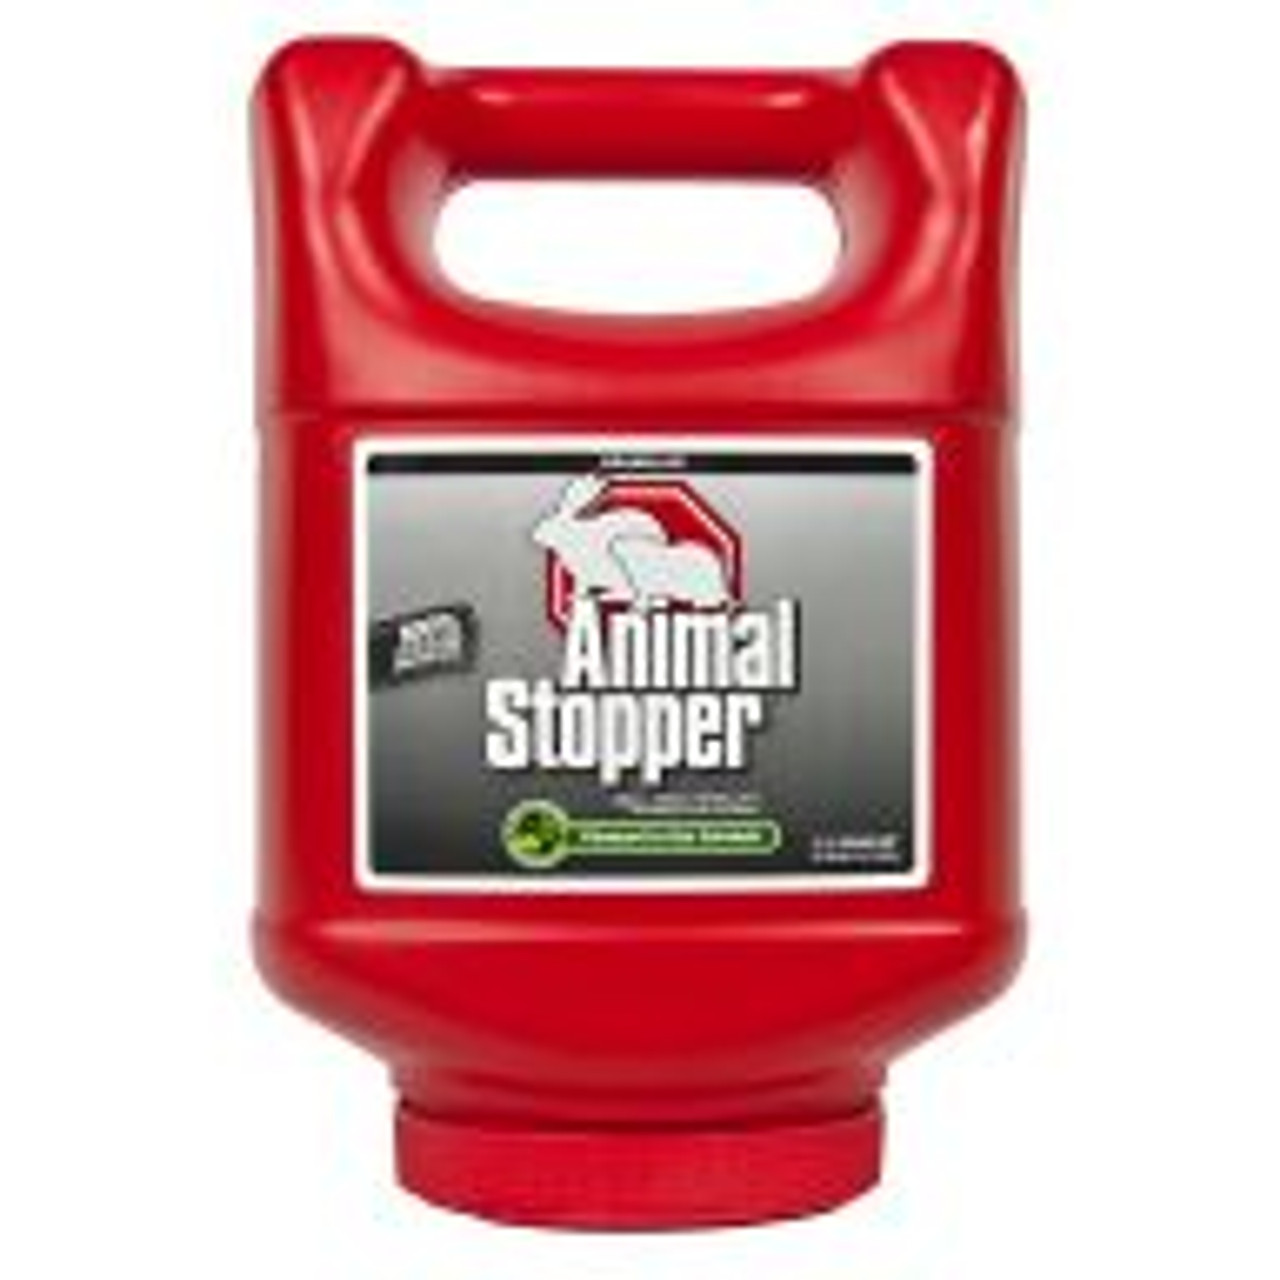 Animal Stopper is a highly effective formula for preventing armadillo, gopher, groundhog, rabbit, raccoon and skunk damage to all shrubs, flowers, edible crops and turf areas. With rosemary oil, mint oil, cinnamon oil and putrescent whole egg solids as active ingredients, this product works by smell, taste and feel. Lasts for approximately 30 days, regardless of weather. Covers an area of 3,600 sq ft.